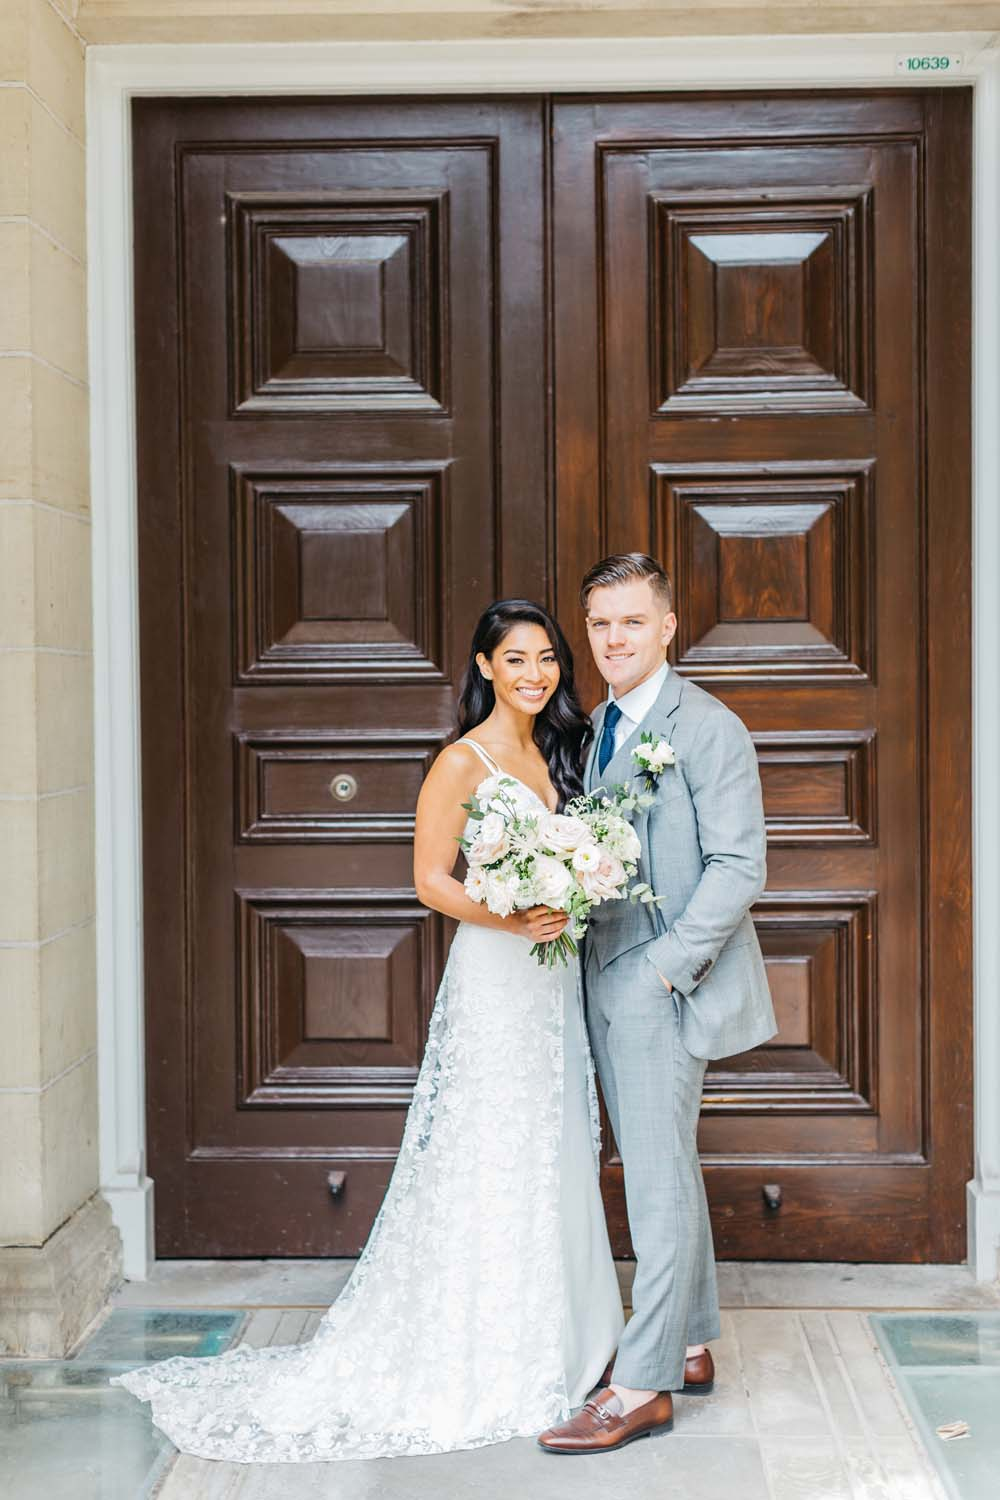 A Bright and Airy September Wedding in Toronto, Ontario - Bride and Groom